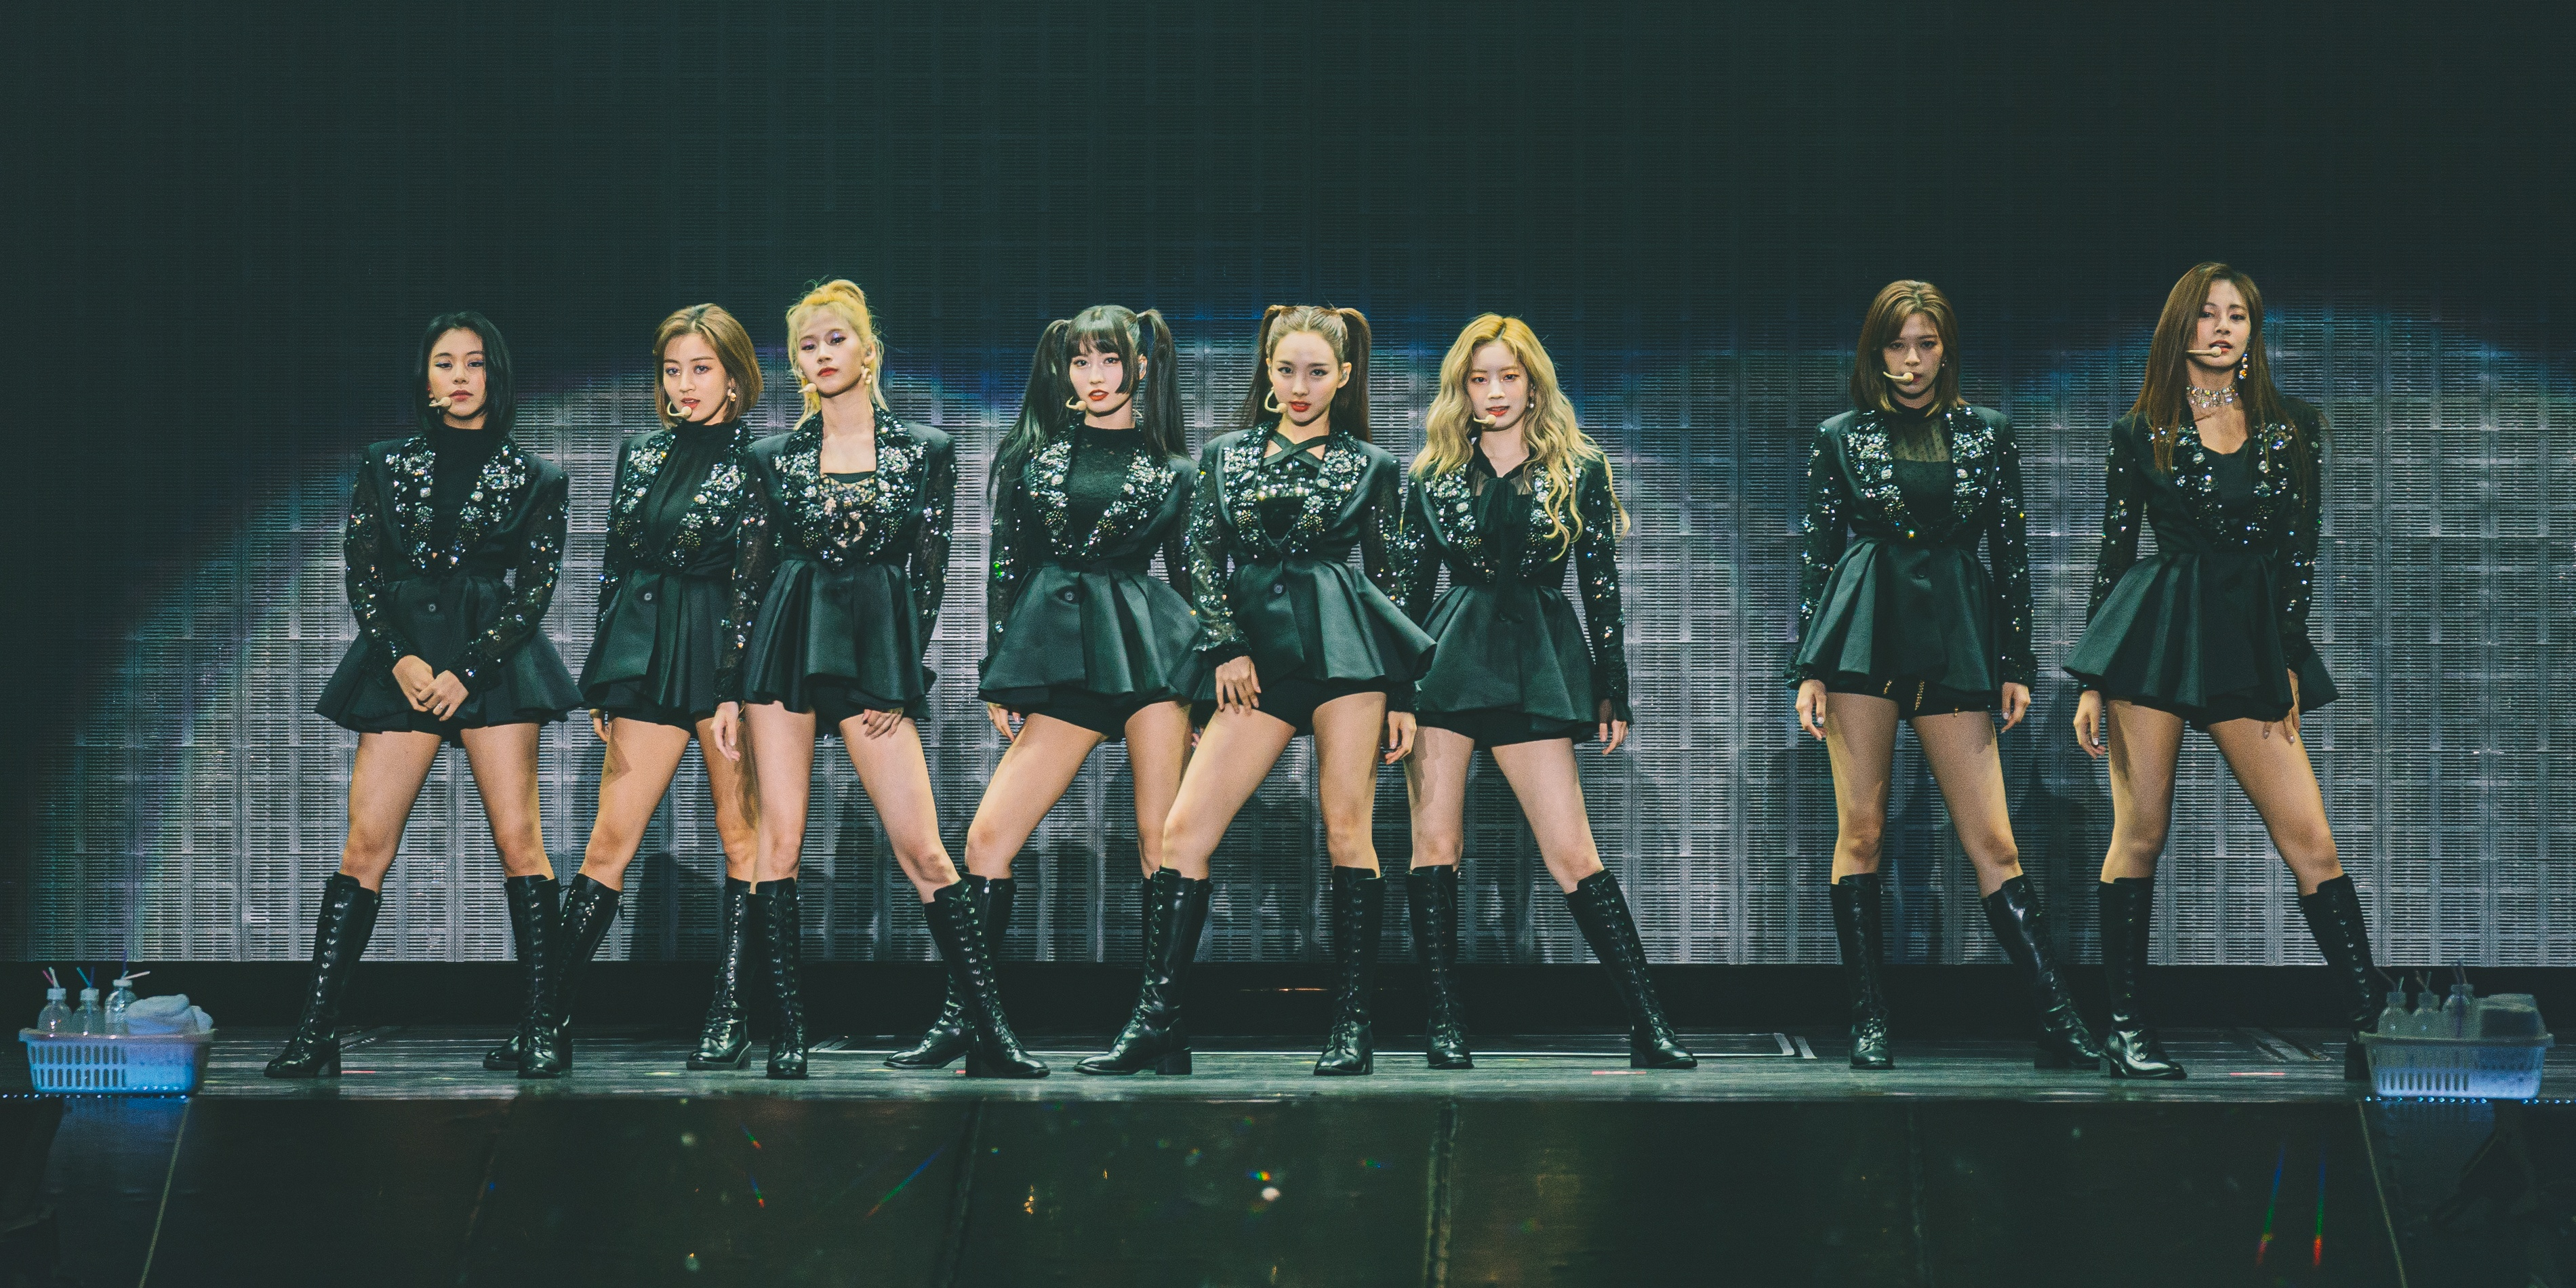 TWICE ensures the show must go on despite member's absence